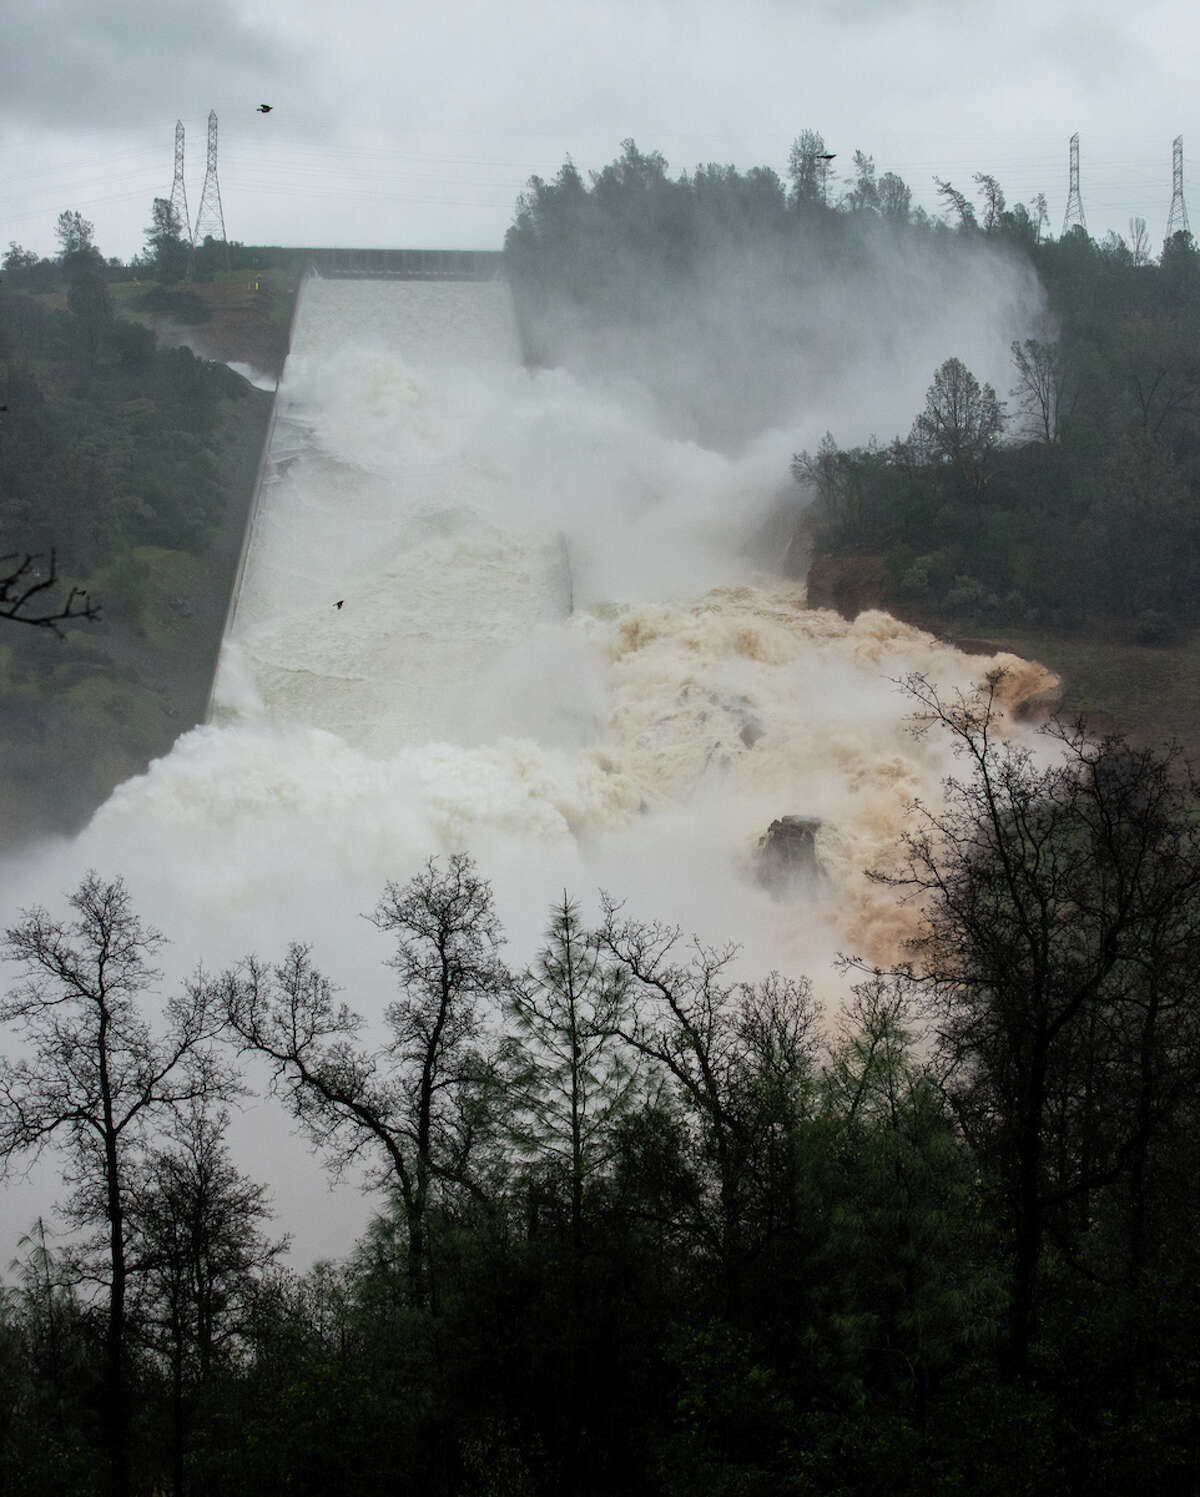 The California Department of Water Resources and host of collaborating agencies continue to monitor the Lake Oroville spillway flows late Thursday afternoon as 35,000 cubic feet per second (cfs) of water was released over the damaged spillway. More erosion is expected, but the releases will help operators absorb the inflow of the storm waters expected Thursday evening and Friday. DWR first noticed erosion on the spillway Tuesday morning and shut off flows to investigate. There is no imminent or expected threat to public safety or the integrity of Oroville Dam in Butte County. Photo taken 3:10 p.m. PST February 9, 2017. Kelly M. Grow/ California Department of Water Resources